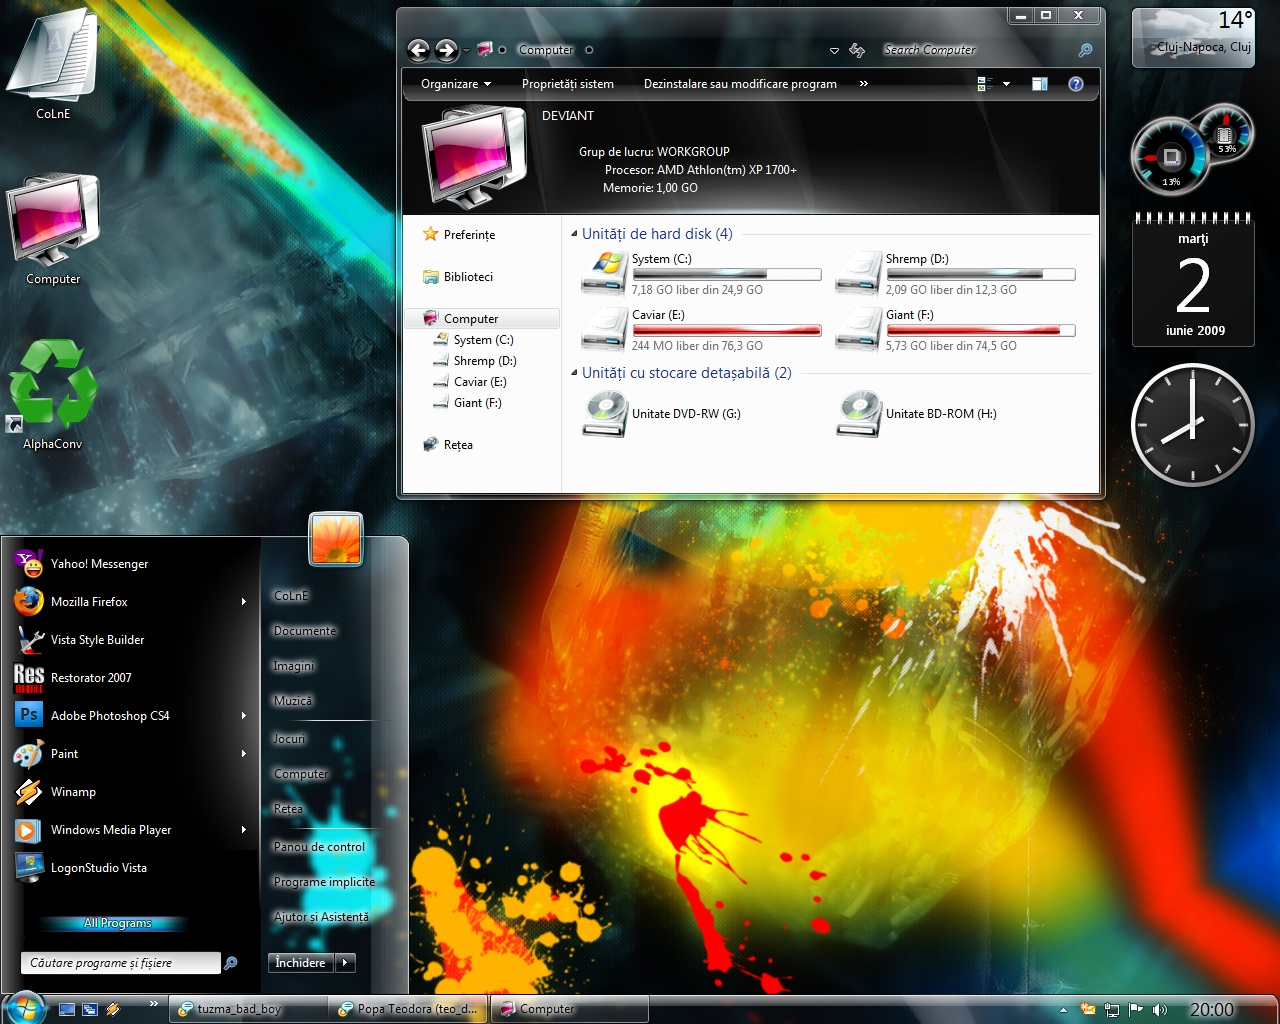 http://4.bp.blogspot.com/-0W-a7Yx2noM/TgMcdykwi1I/AAAAAAAAAz8/d9lLmDmjieg/s1600/New_Theme_For_Windows_7_by_alkhan.jpg